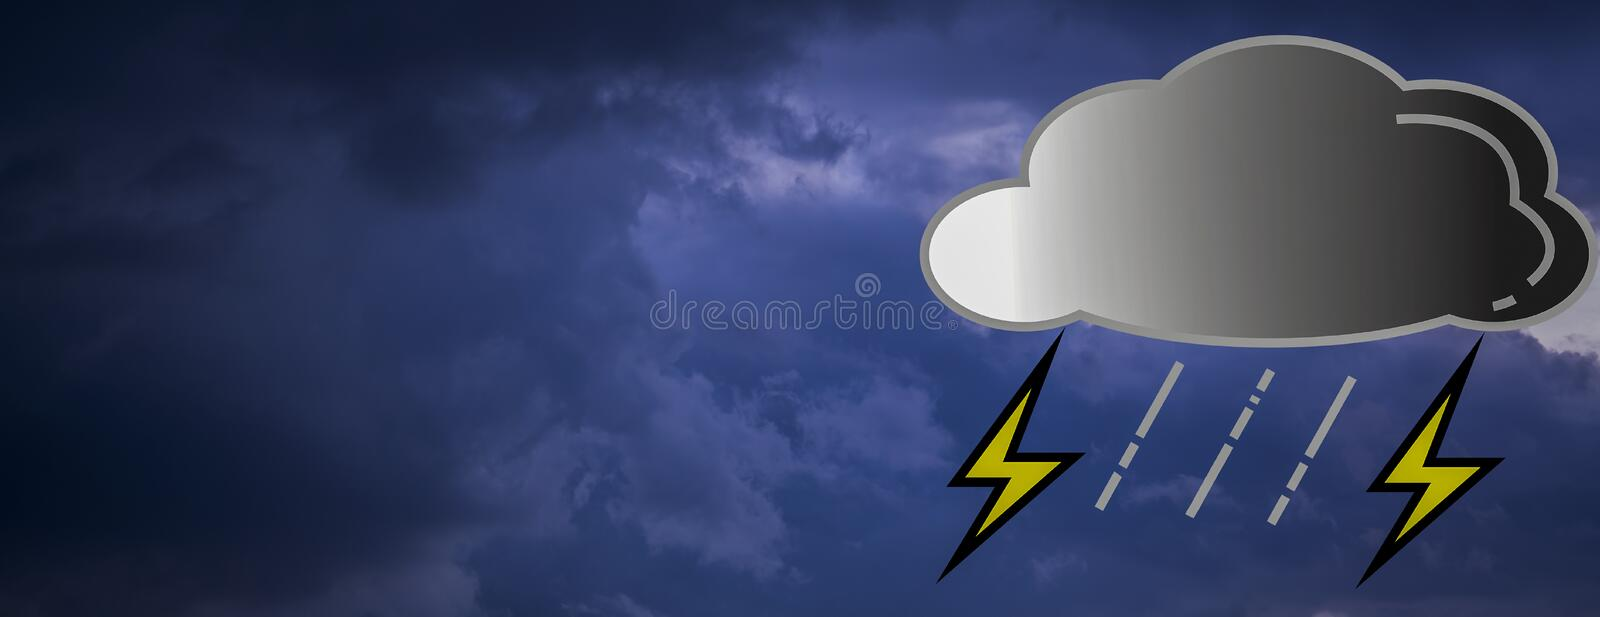 Banner horizontal rectangle Clouds are black in sky, while rain is falling, With icons rainand lightning symbols. With copy space. And put text and weather stock illustration